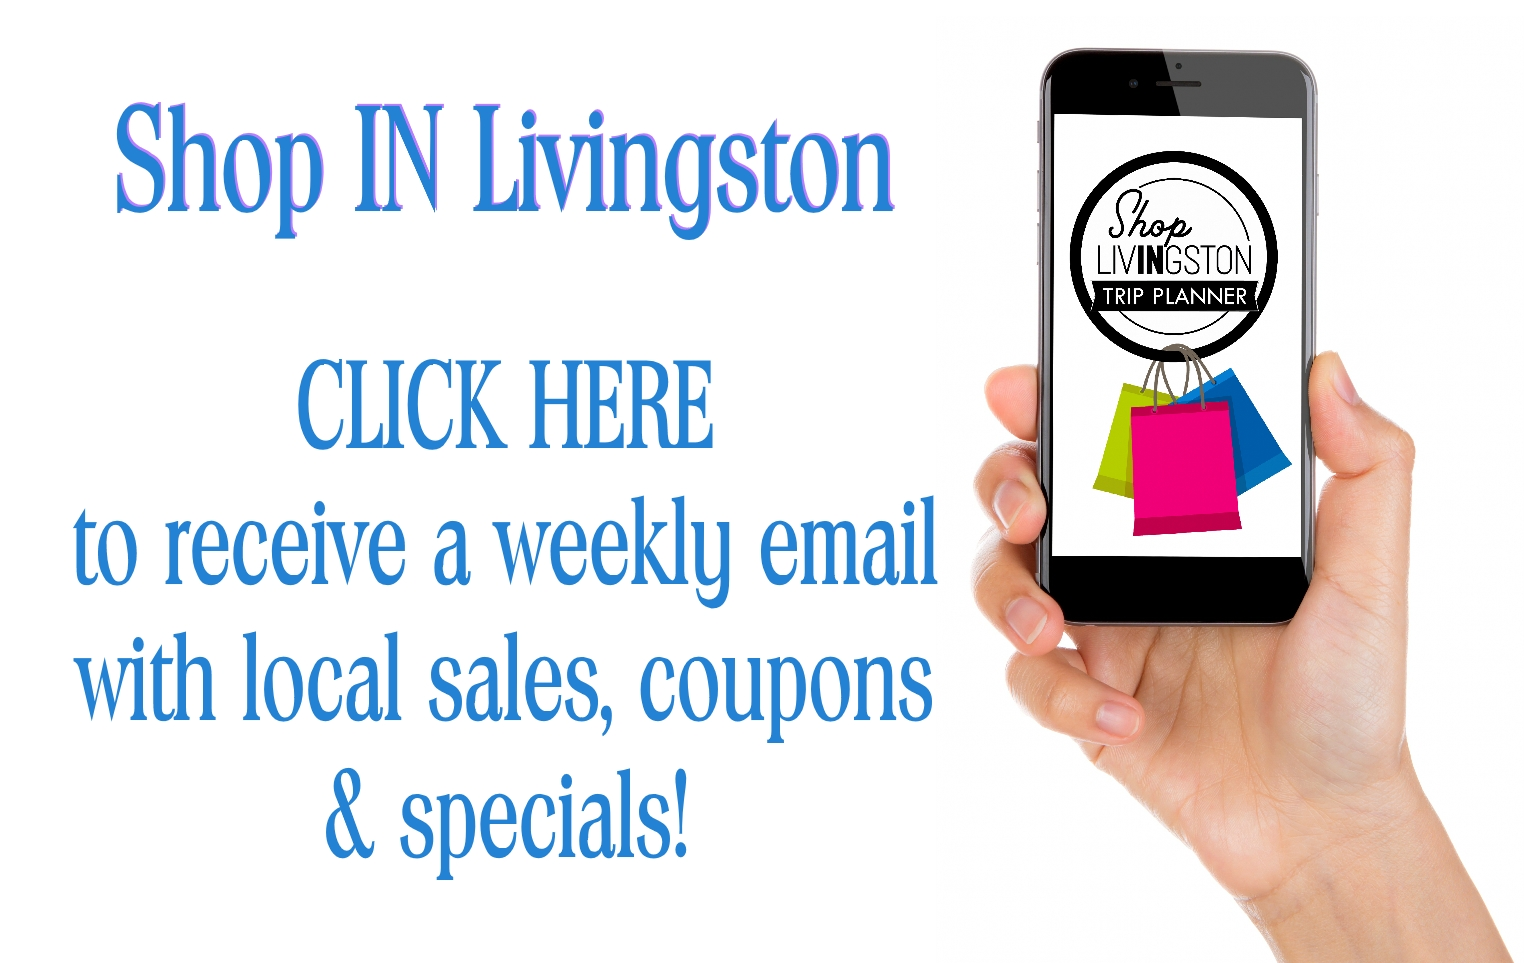 Chamber-Website-Header-Shop-IN-Livingston-Trip-Planner-Sign-Up.jpg